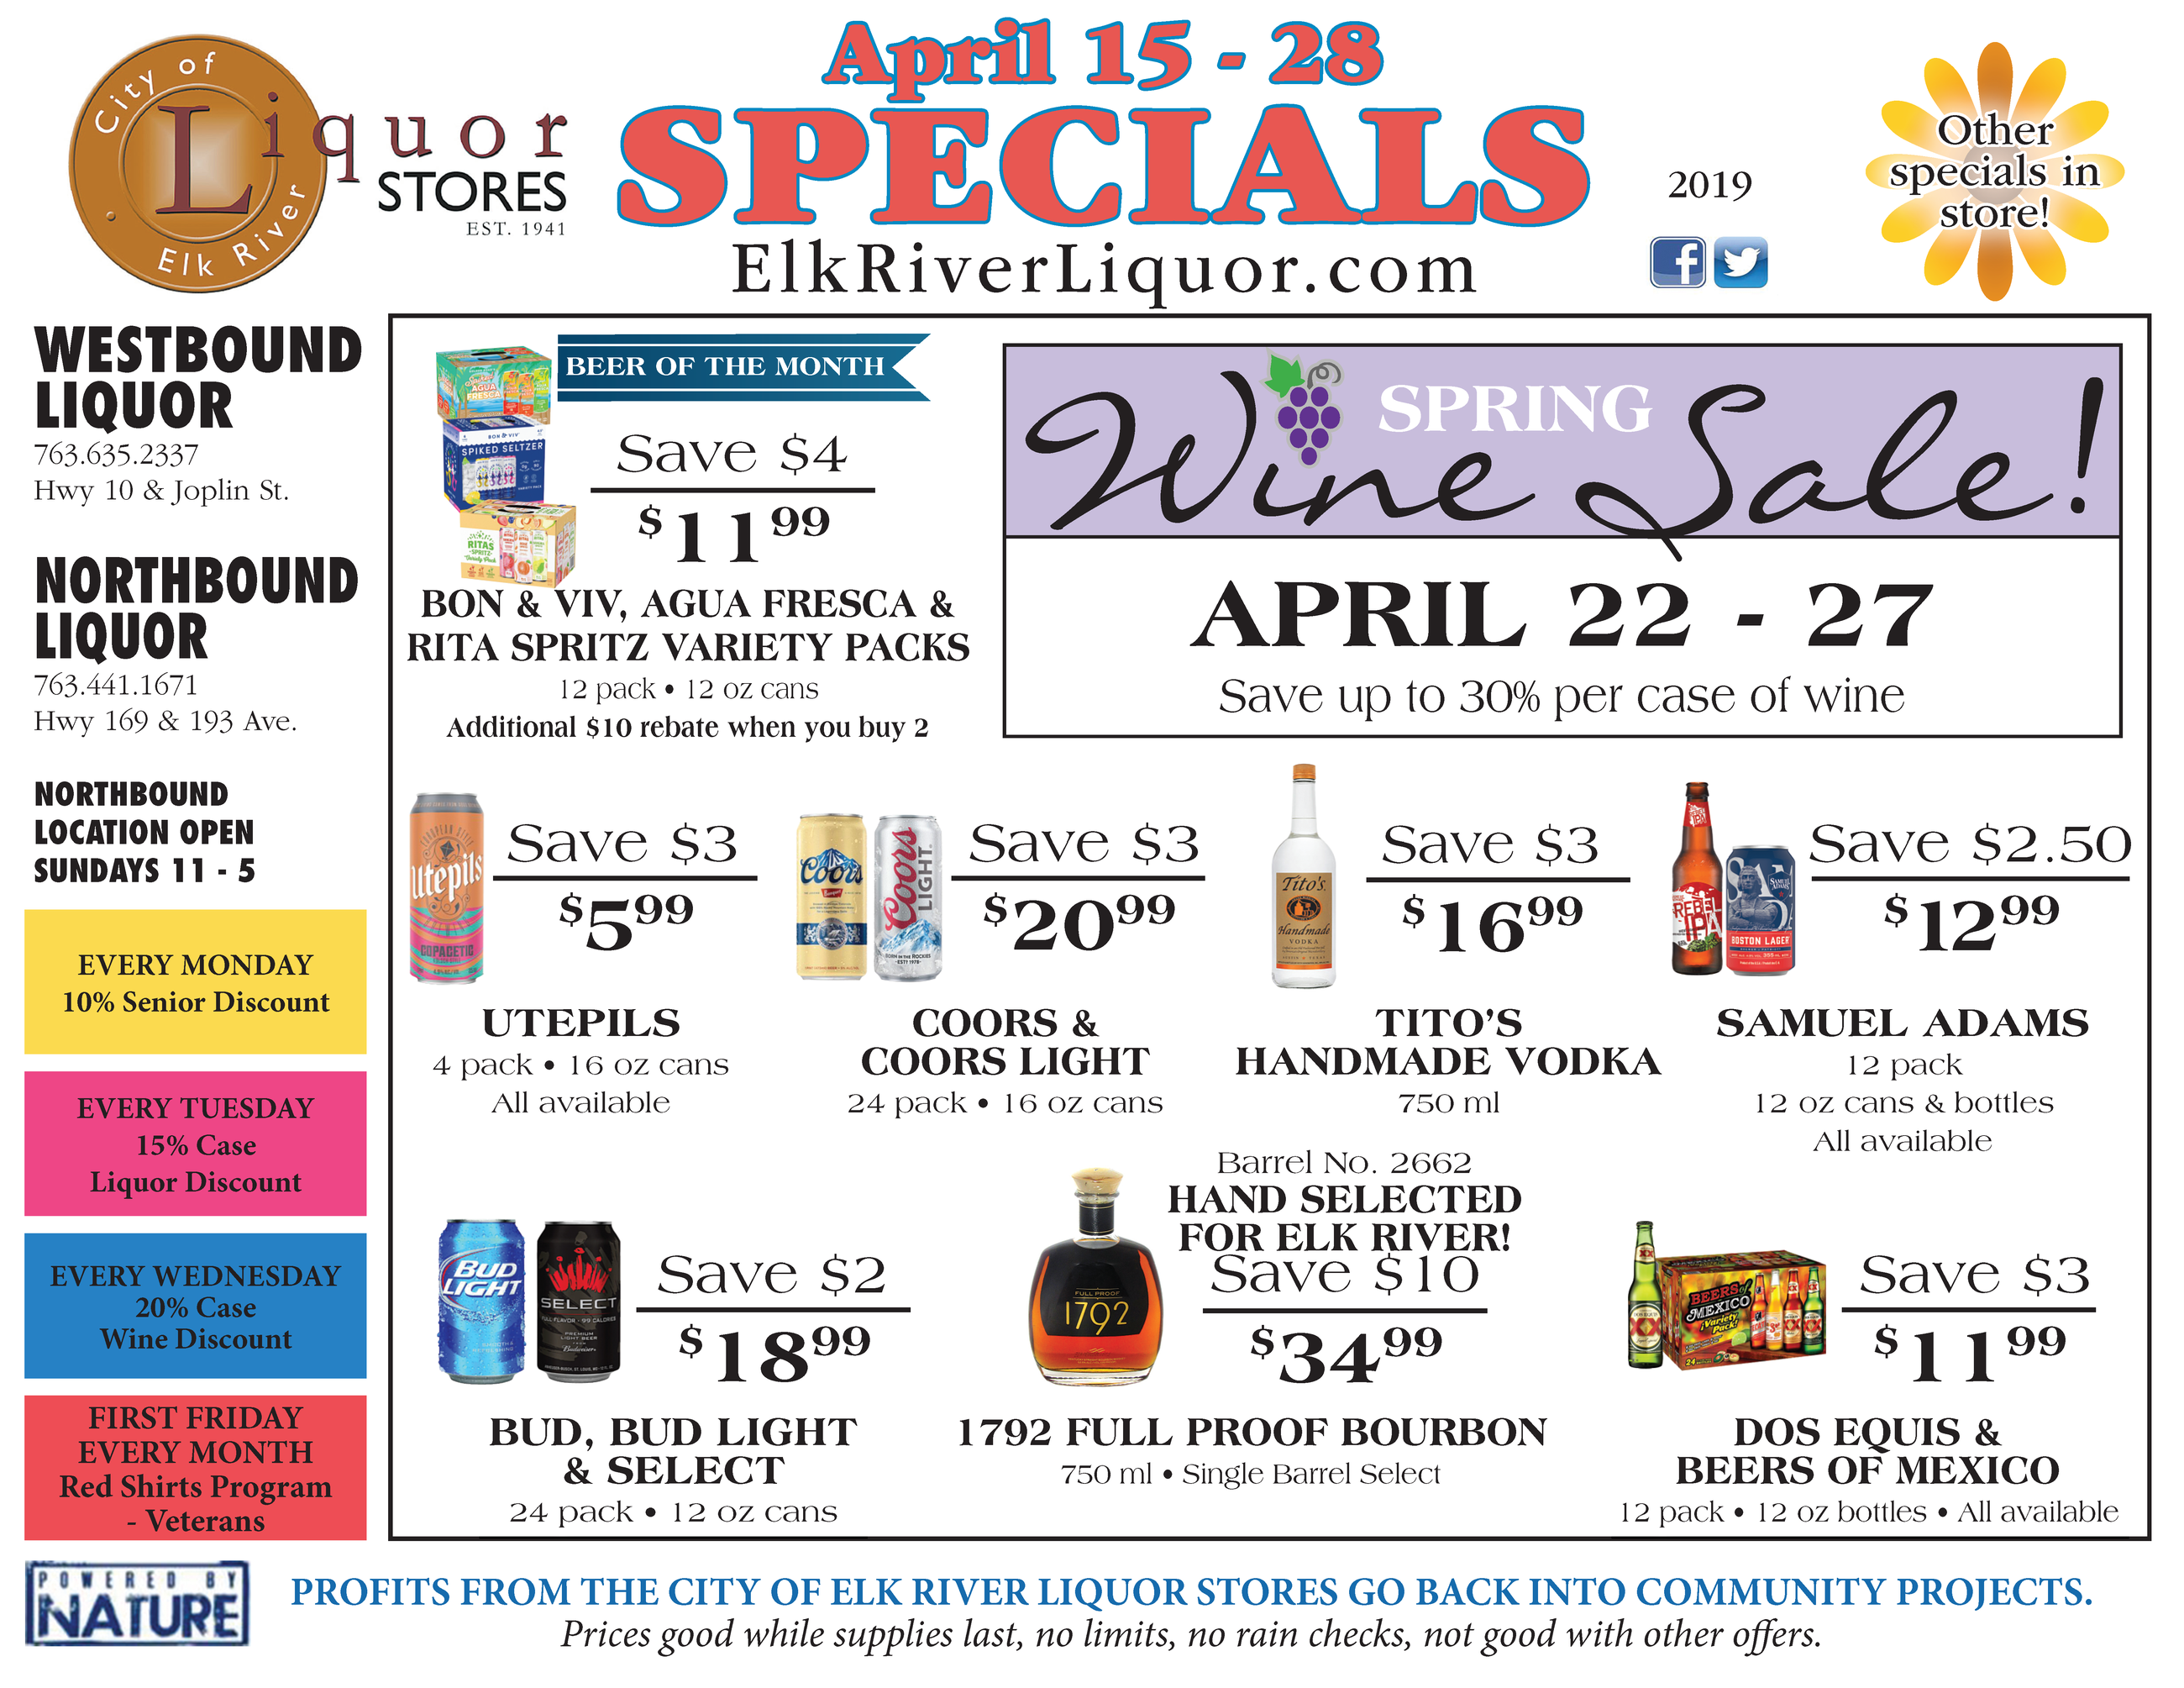 List of specials for Westbound and Northbound Liquor